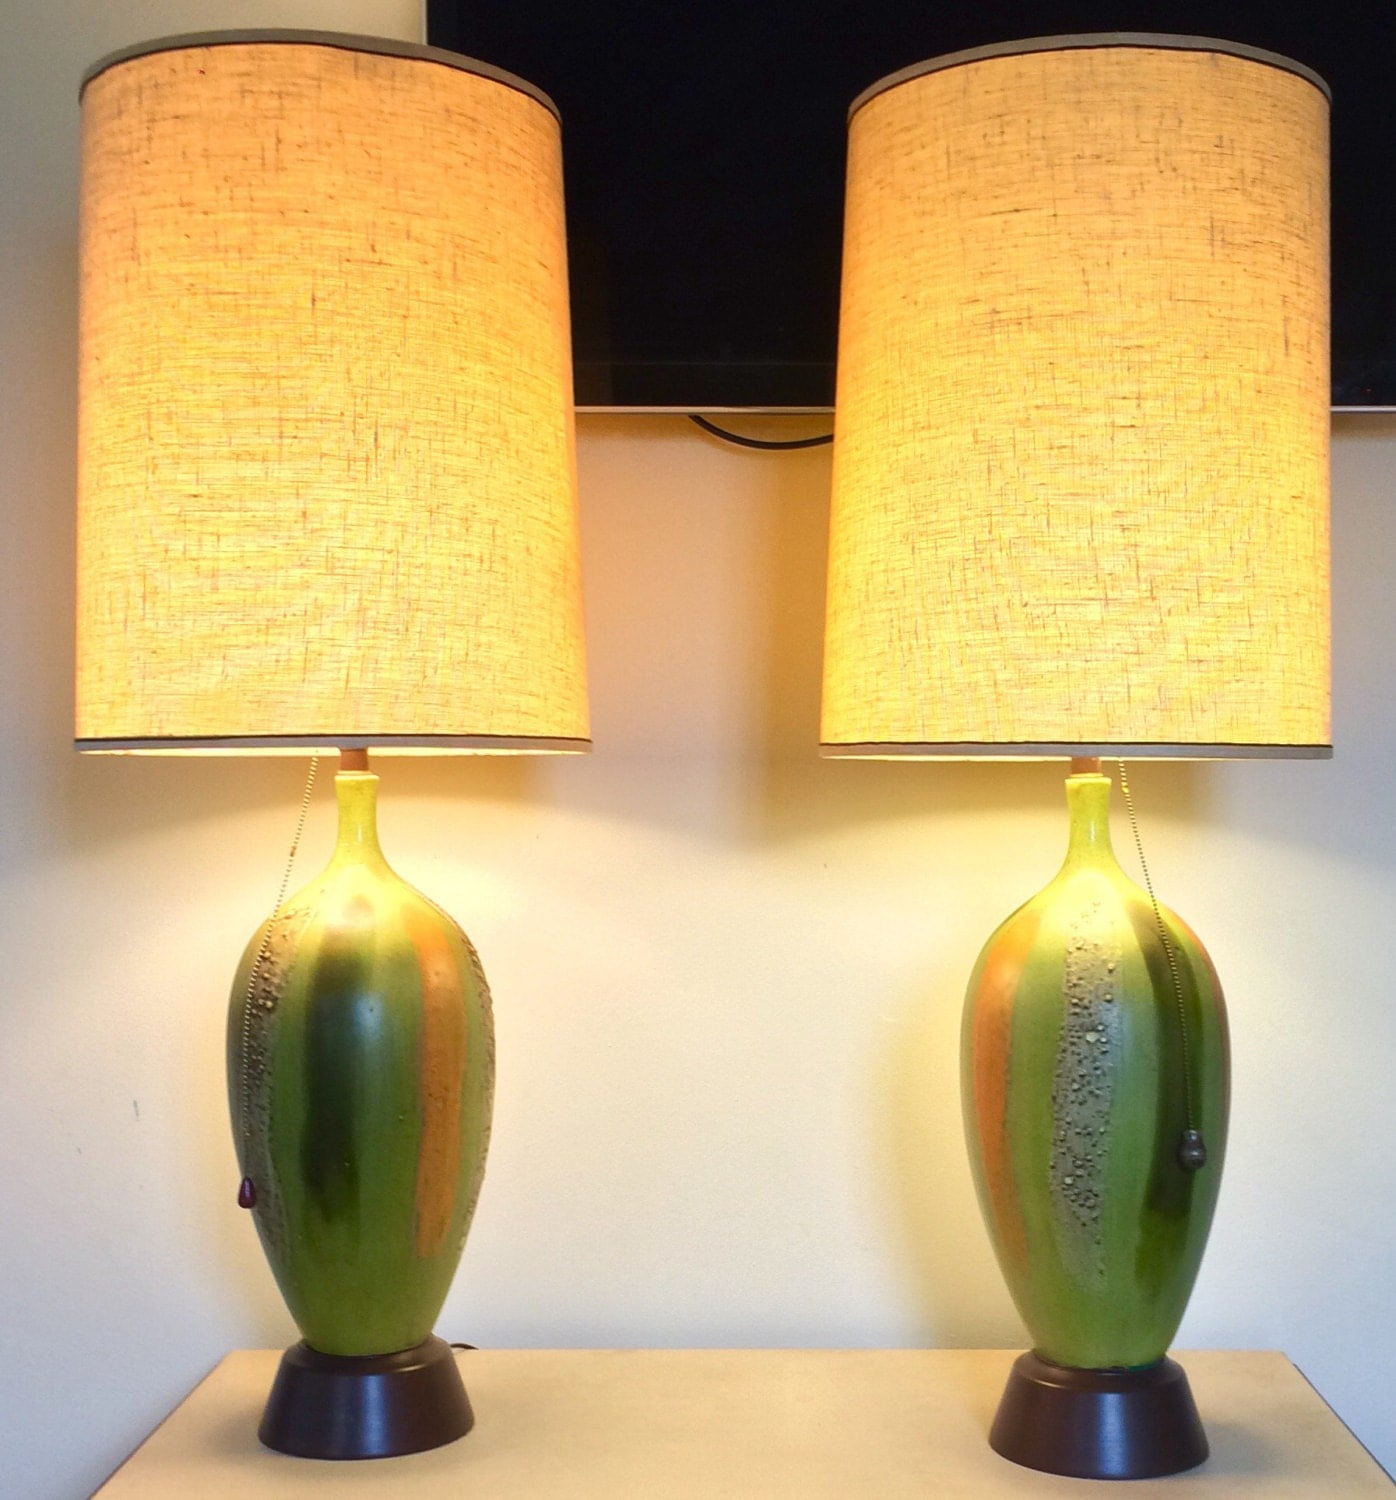 danish mid century modern table lamps drip glazed retro s era  - danish mid century modern table lamps drip glazed retro s era in olivegreen orange and yellow located in chicago hip modern fun